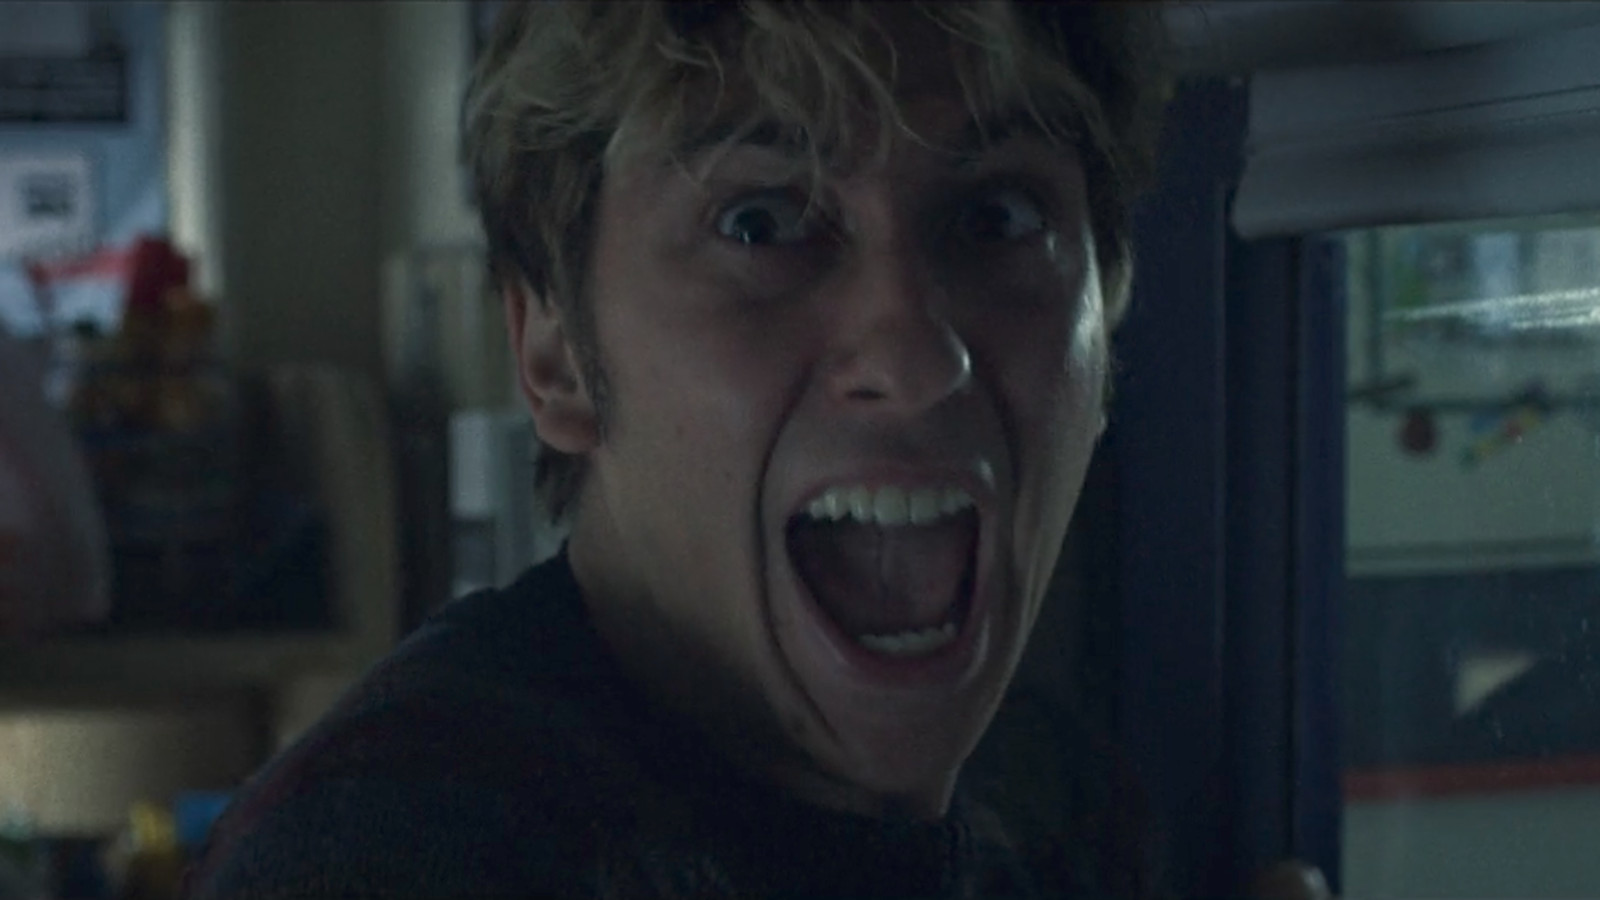 Death Note trailer leaves fans unsure about everything